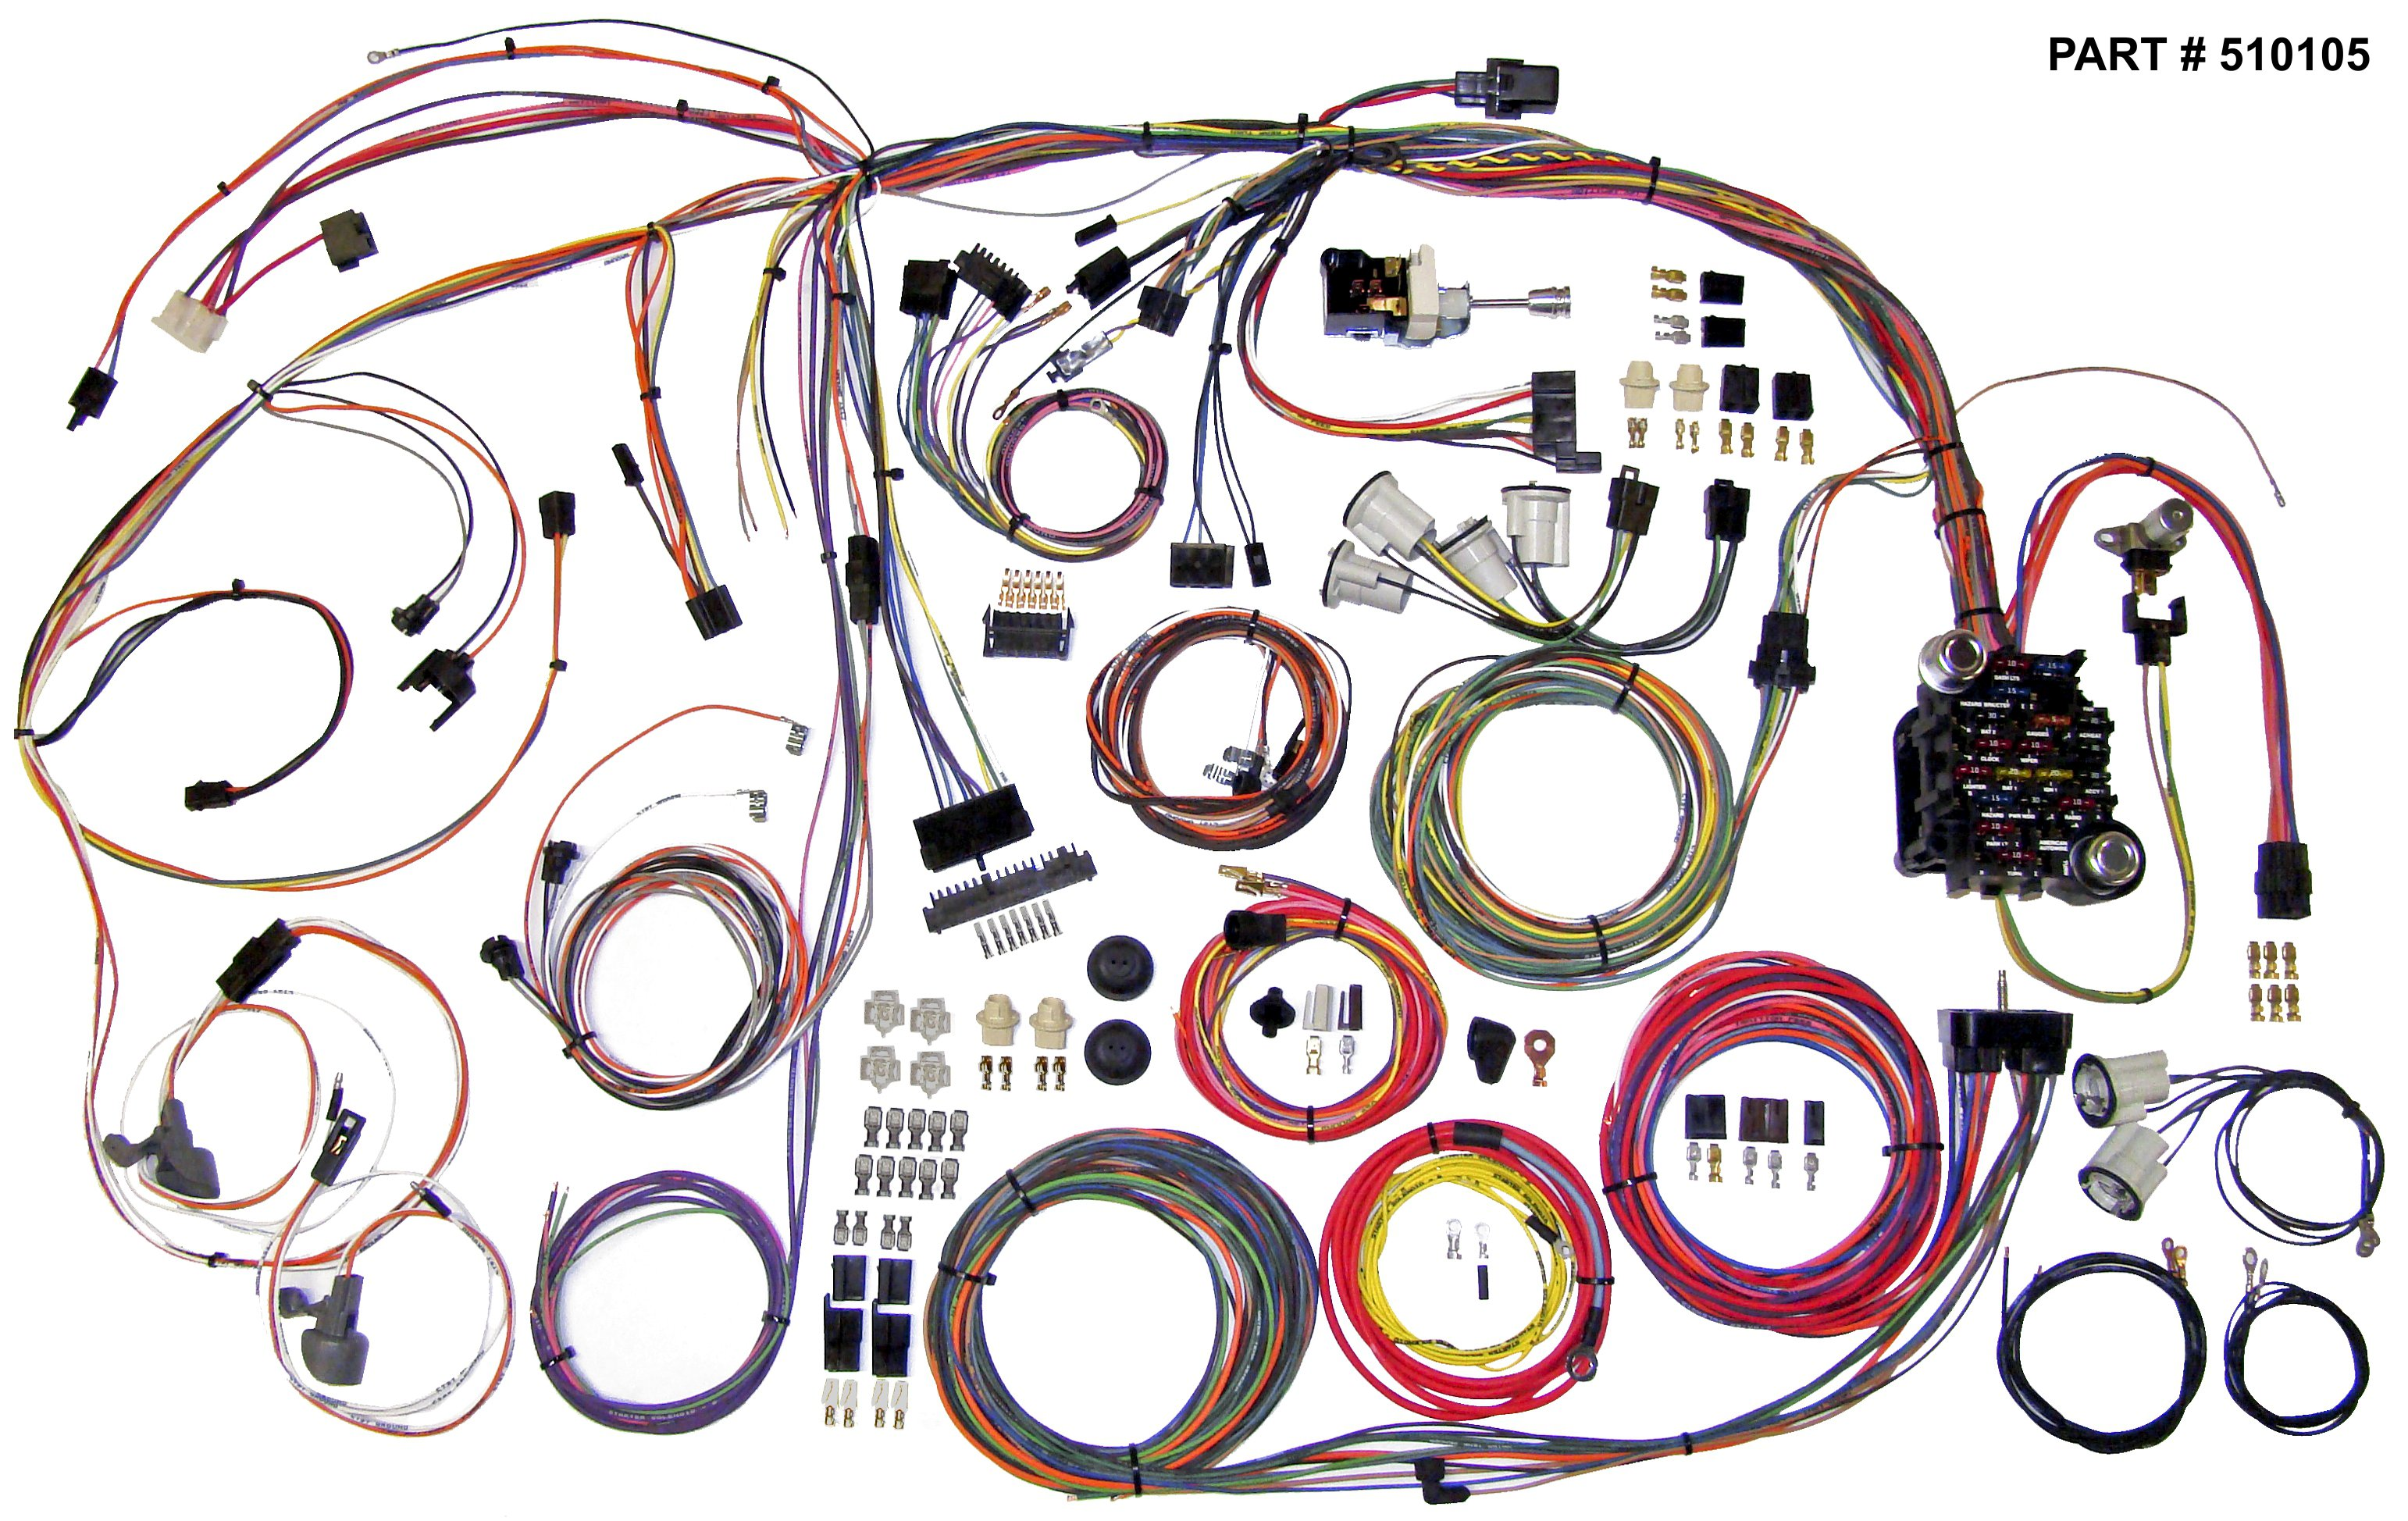 Marvelous 1970 1972 Chevrolet Chevelle El Camino Restomod Wiring System Wiring Digital Resources Indicompassionincorg